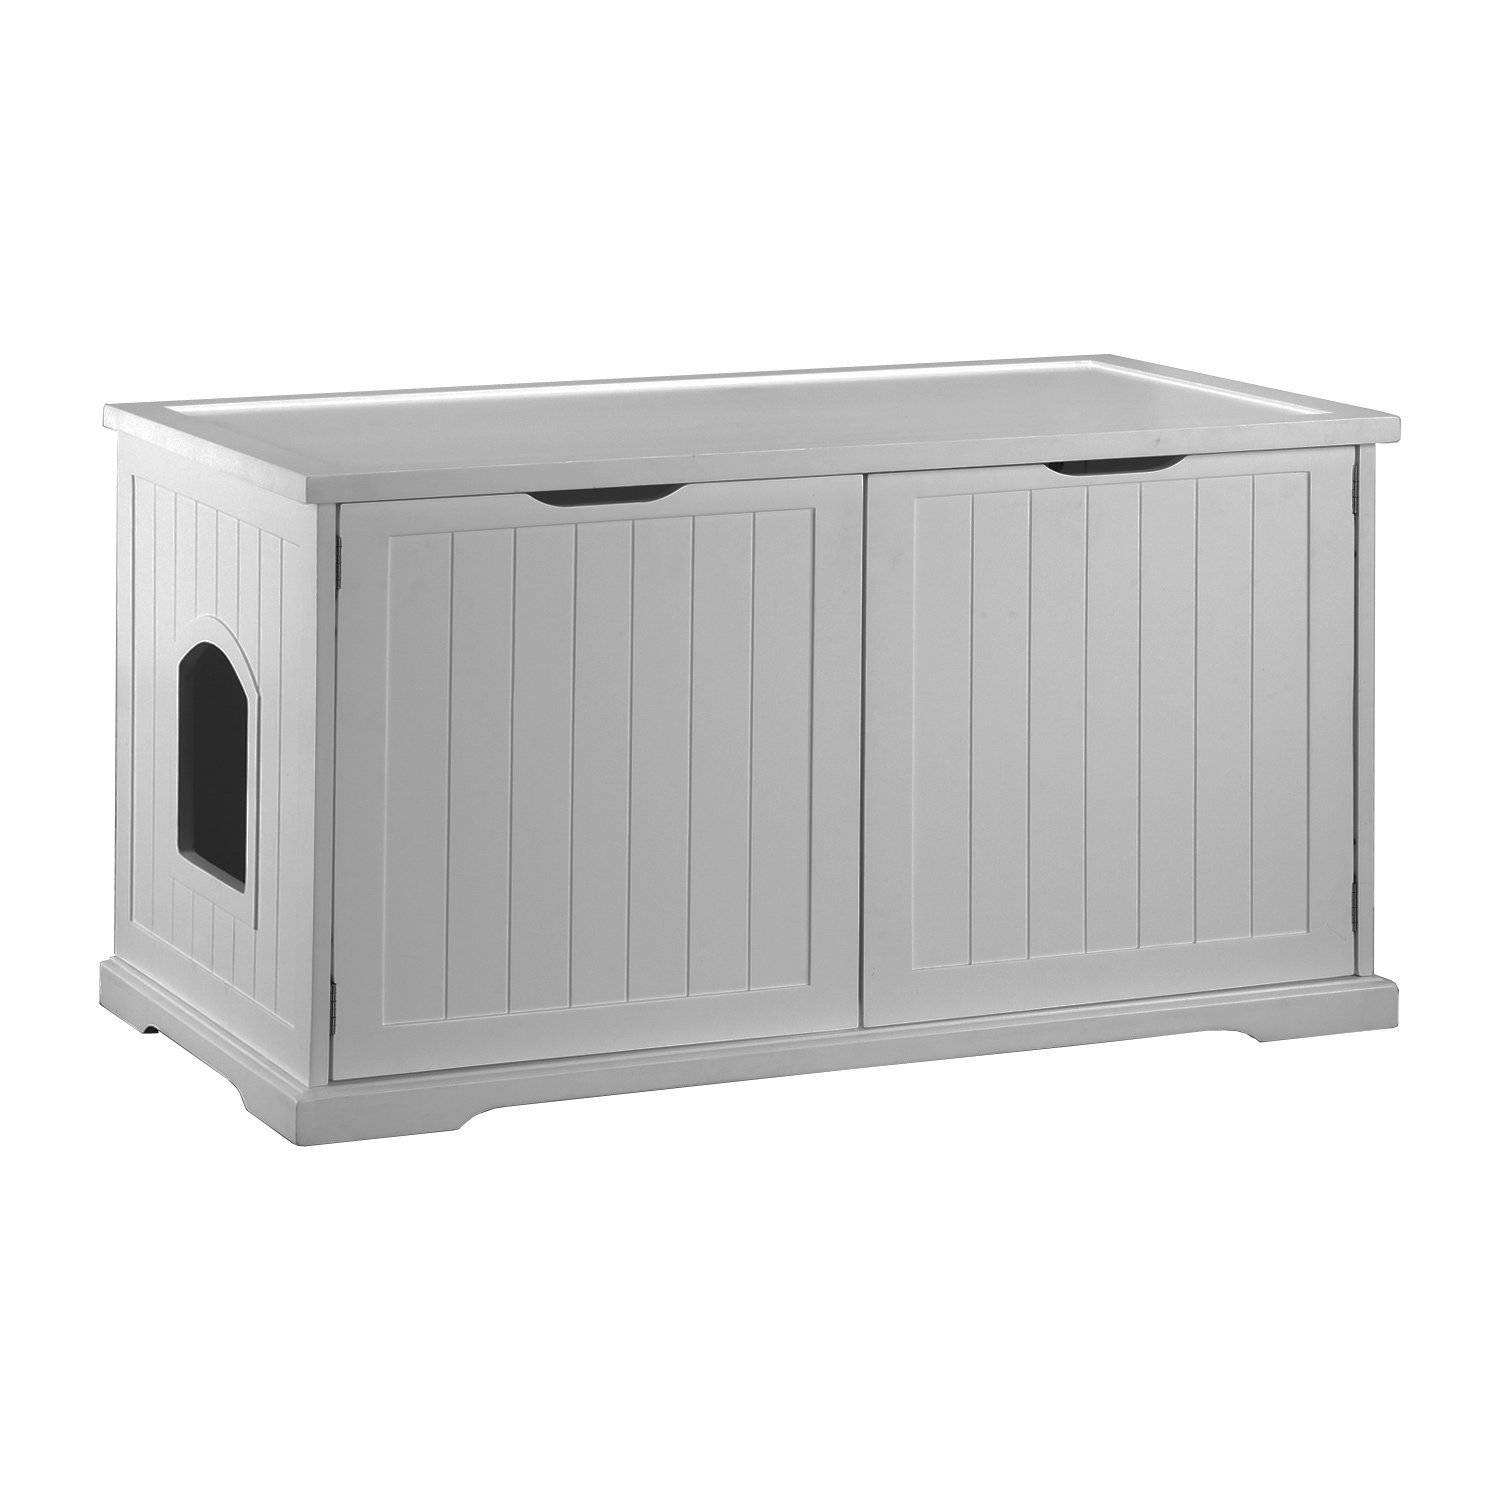 Modern Cat Designs Large Litter Box Hider  315  Merry Products Cat Washroom  Bench. Covered Litter Boxes  Pros and Cons   Meow Lifestyle